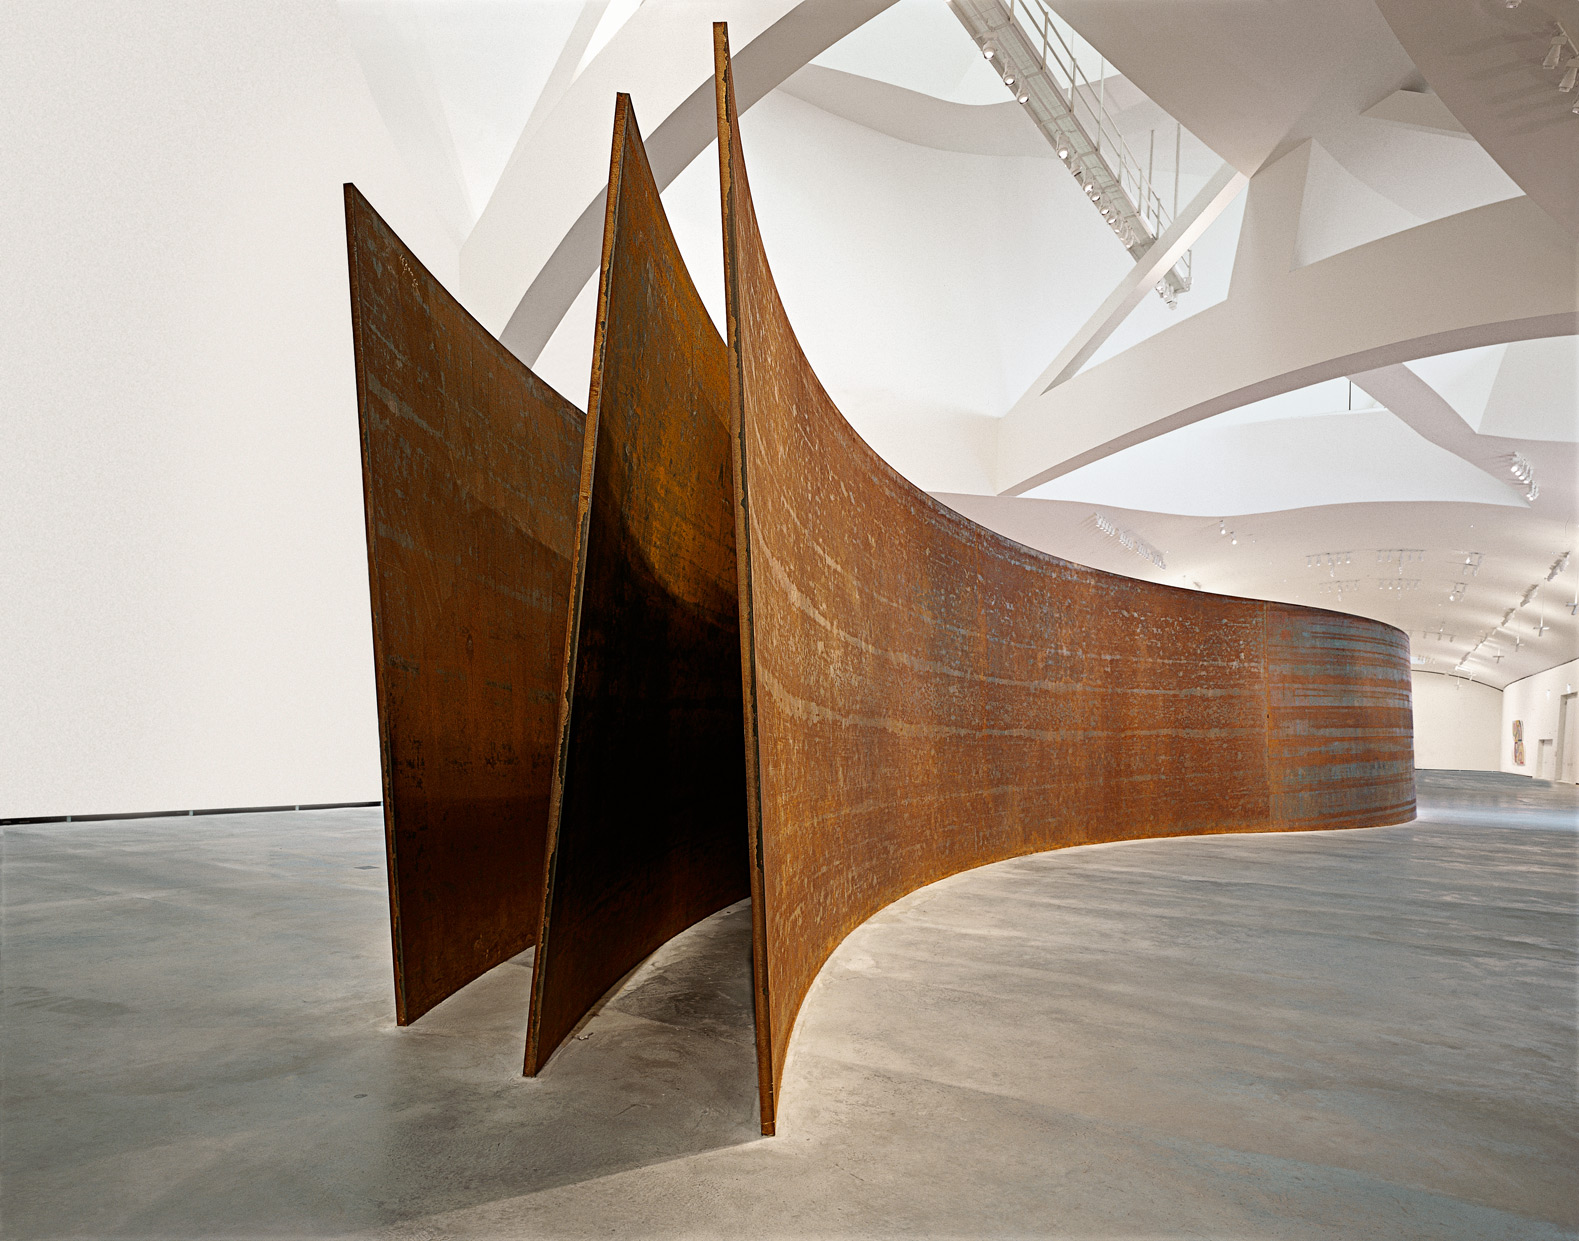 Snake | The Matter of Time | Richard Serra | Guggenheim Bilbao Museoa